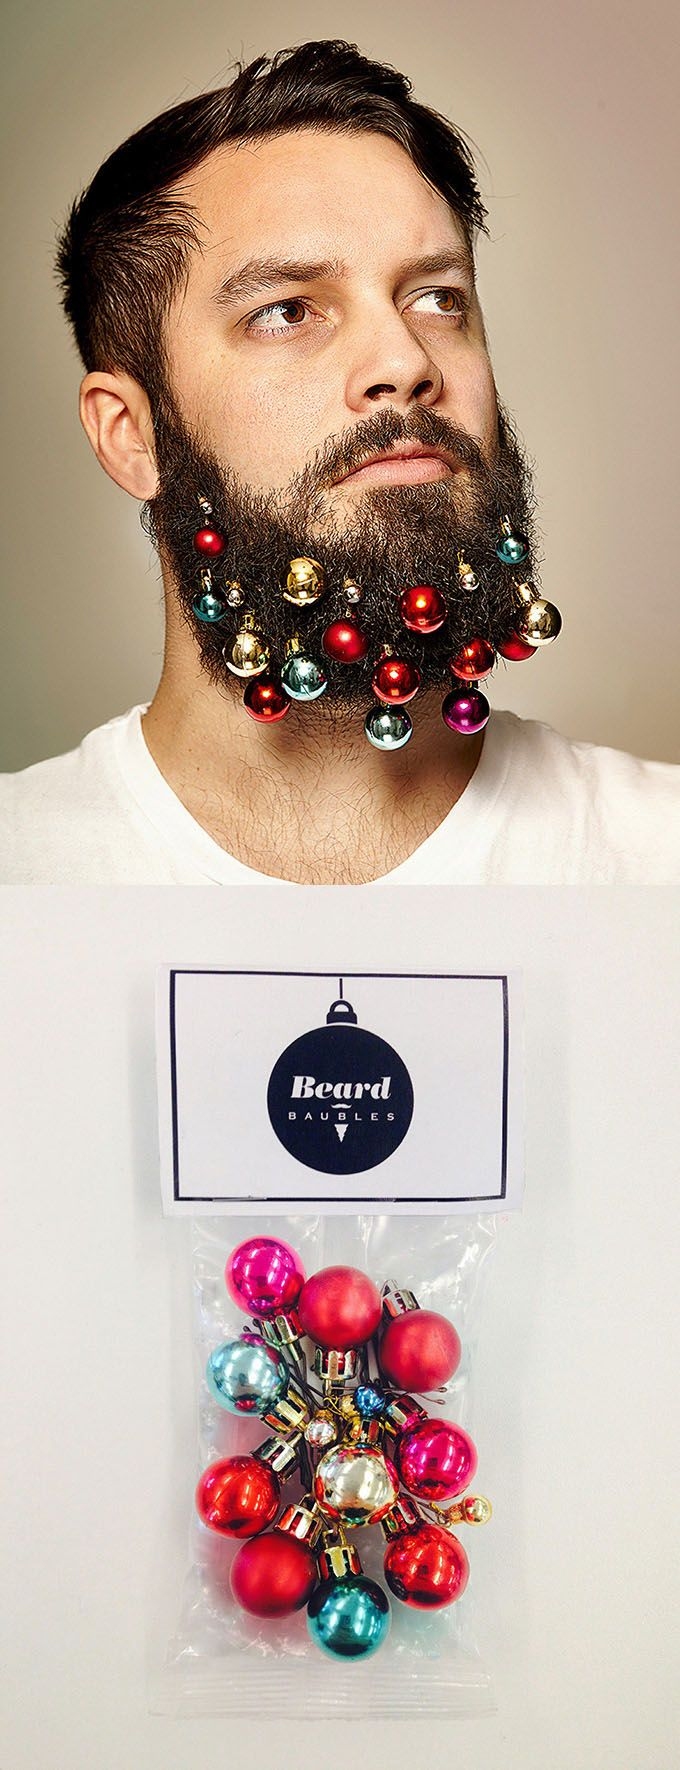 Beard Baubles agency Christmas card promo (also on sale $10 for 12 baubles)  | Creative:  Mike Kennedy and Pauline Ashford at ad agency Grey London | http://beardbaubles.tictail.com/product/beard-baubles